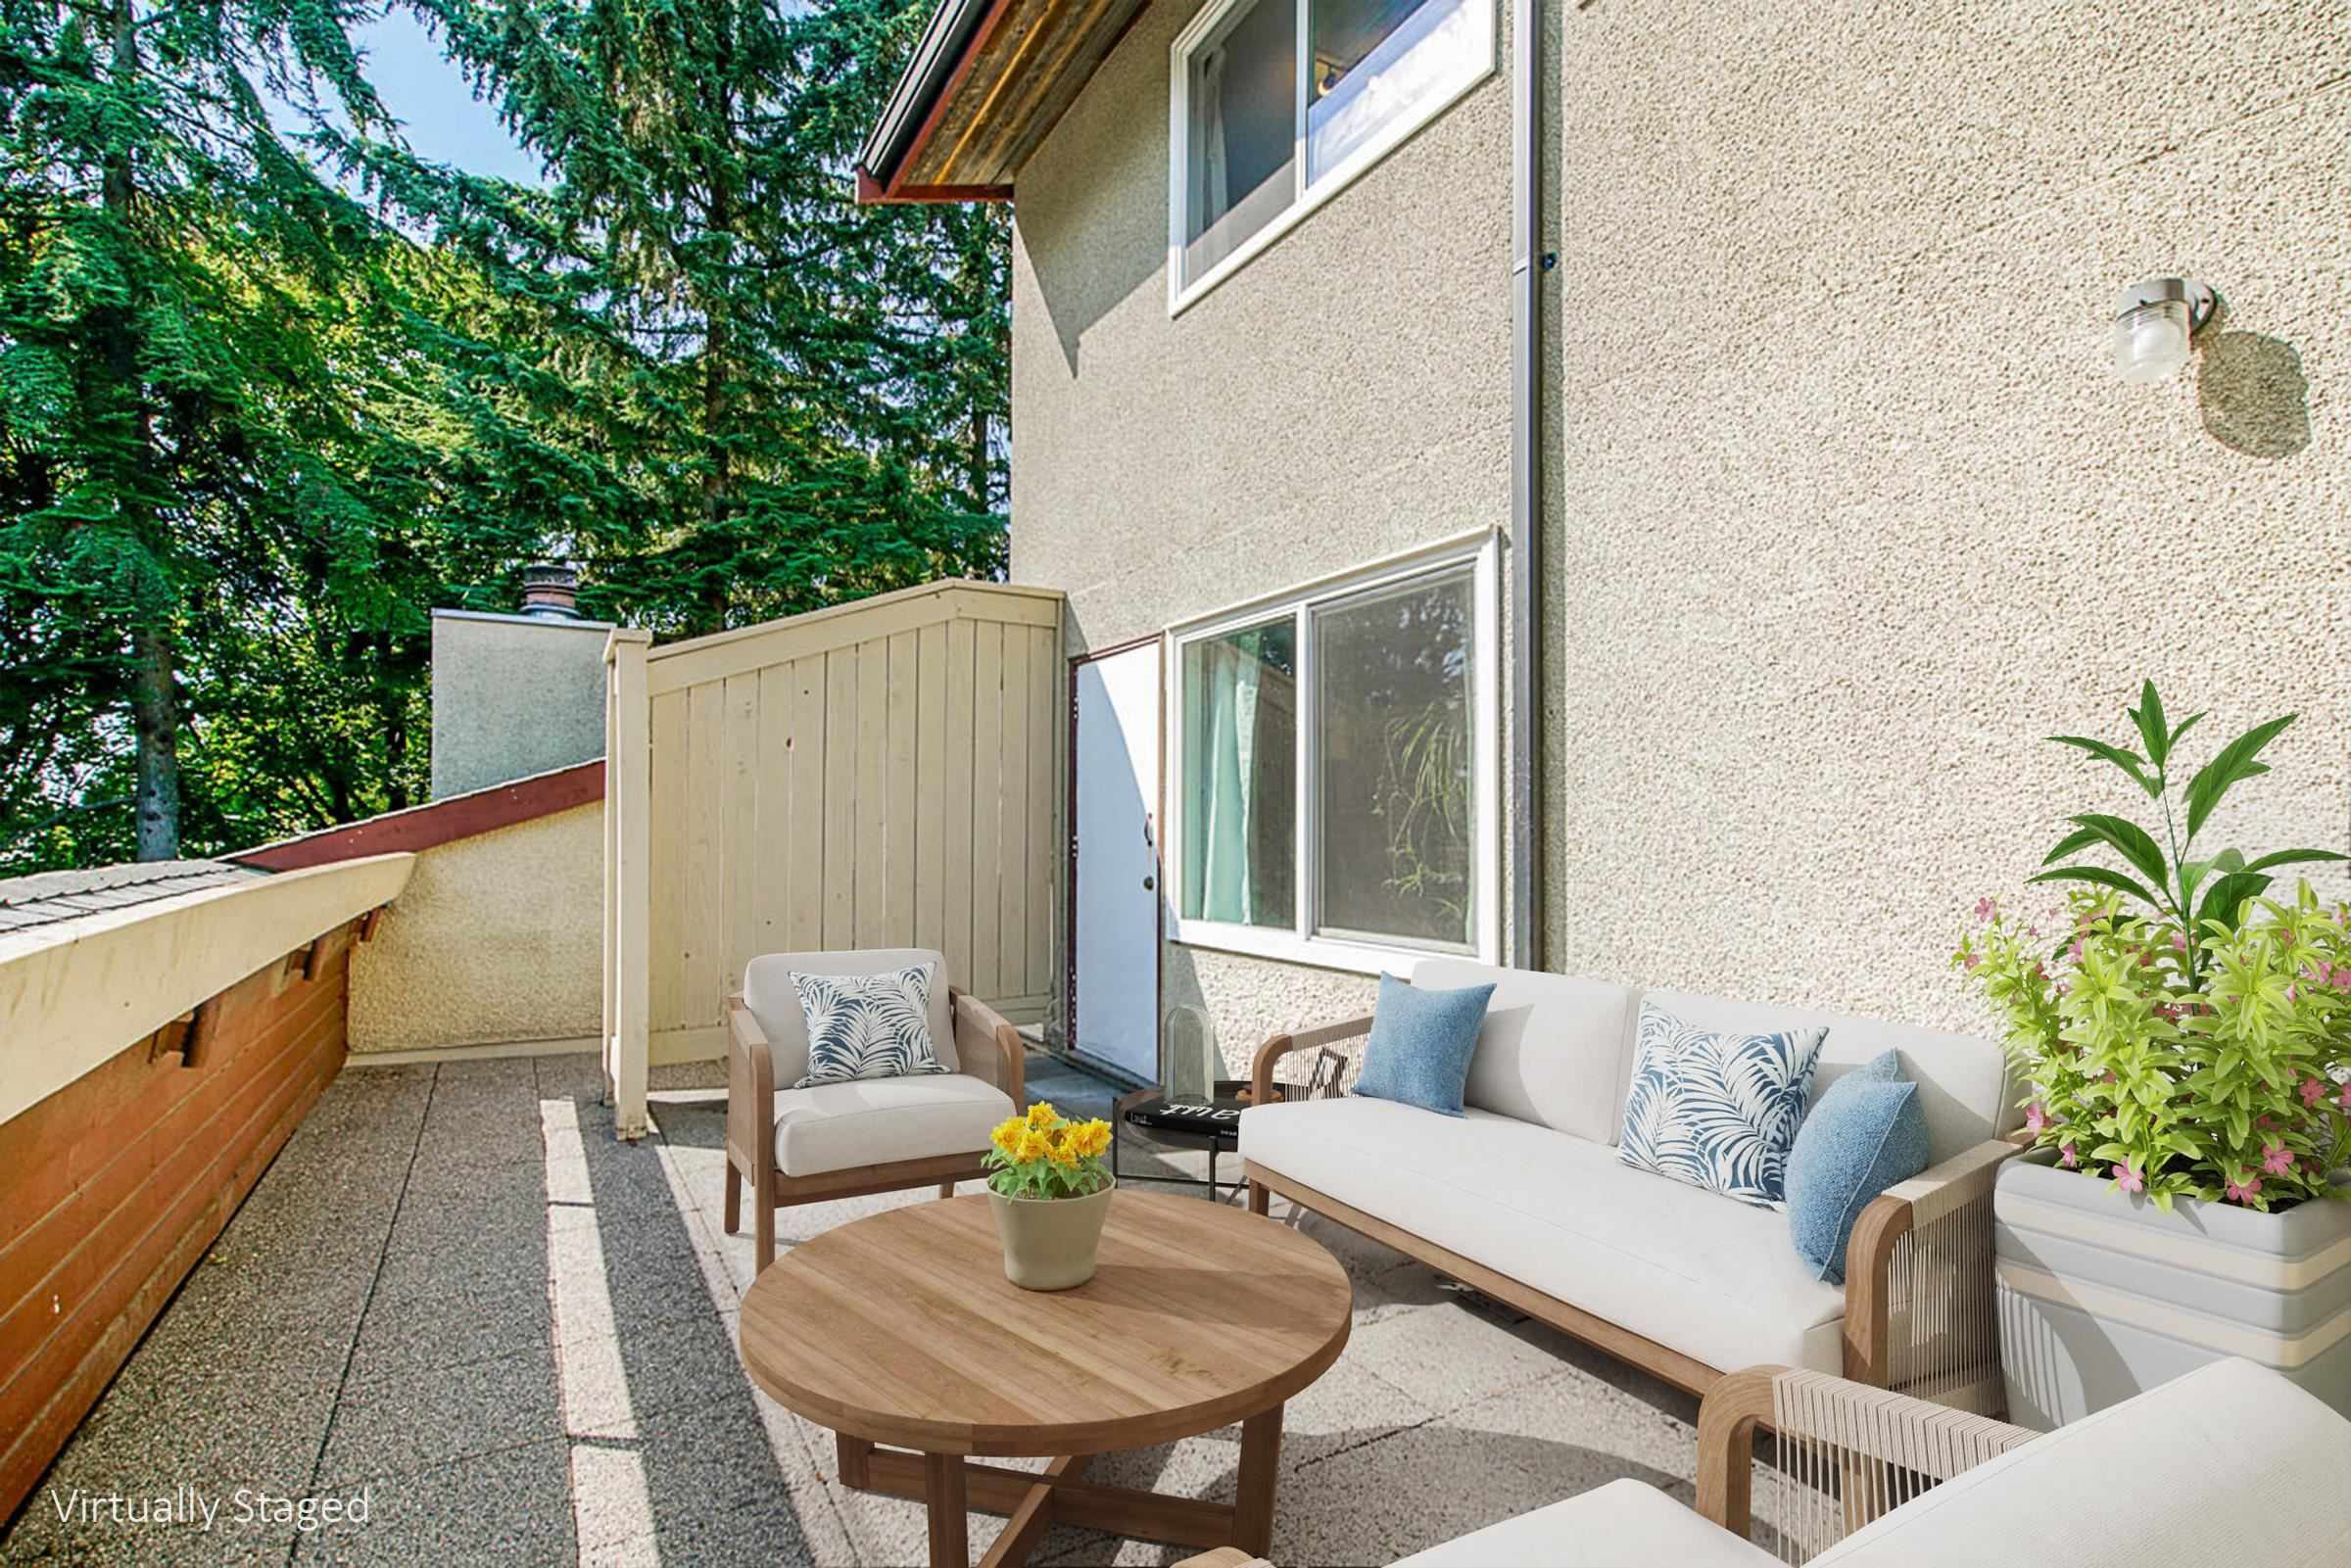 suuny patio with green outllook.  Virtually staged